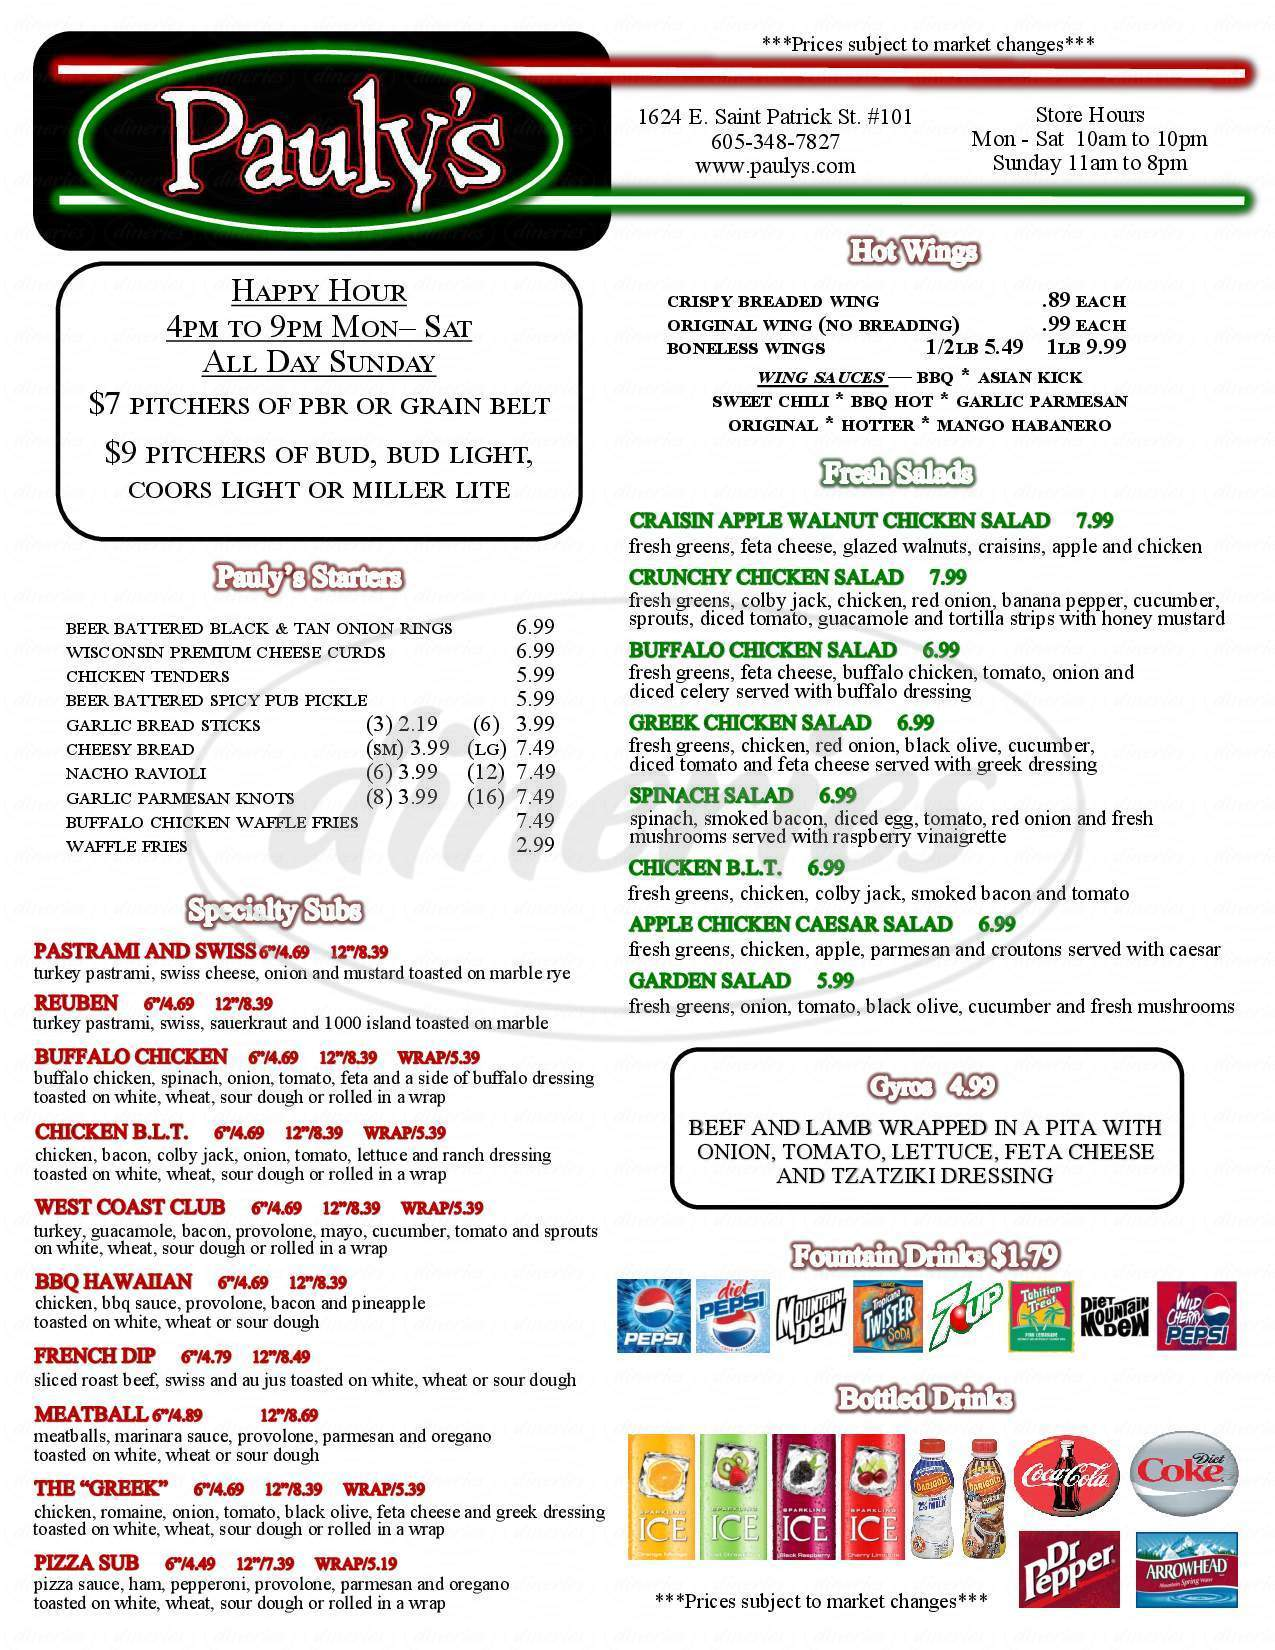 menu for Pauly's Pizzeria and Sub Co